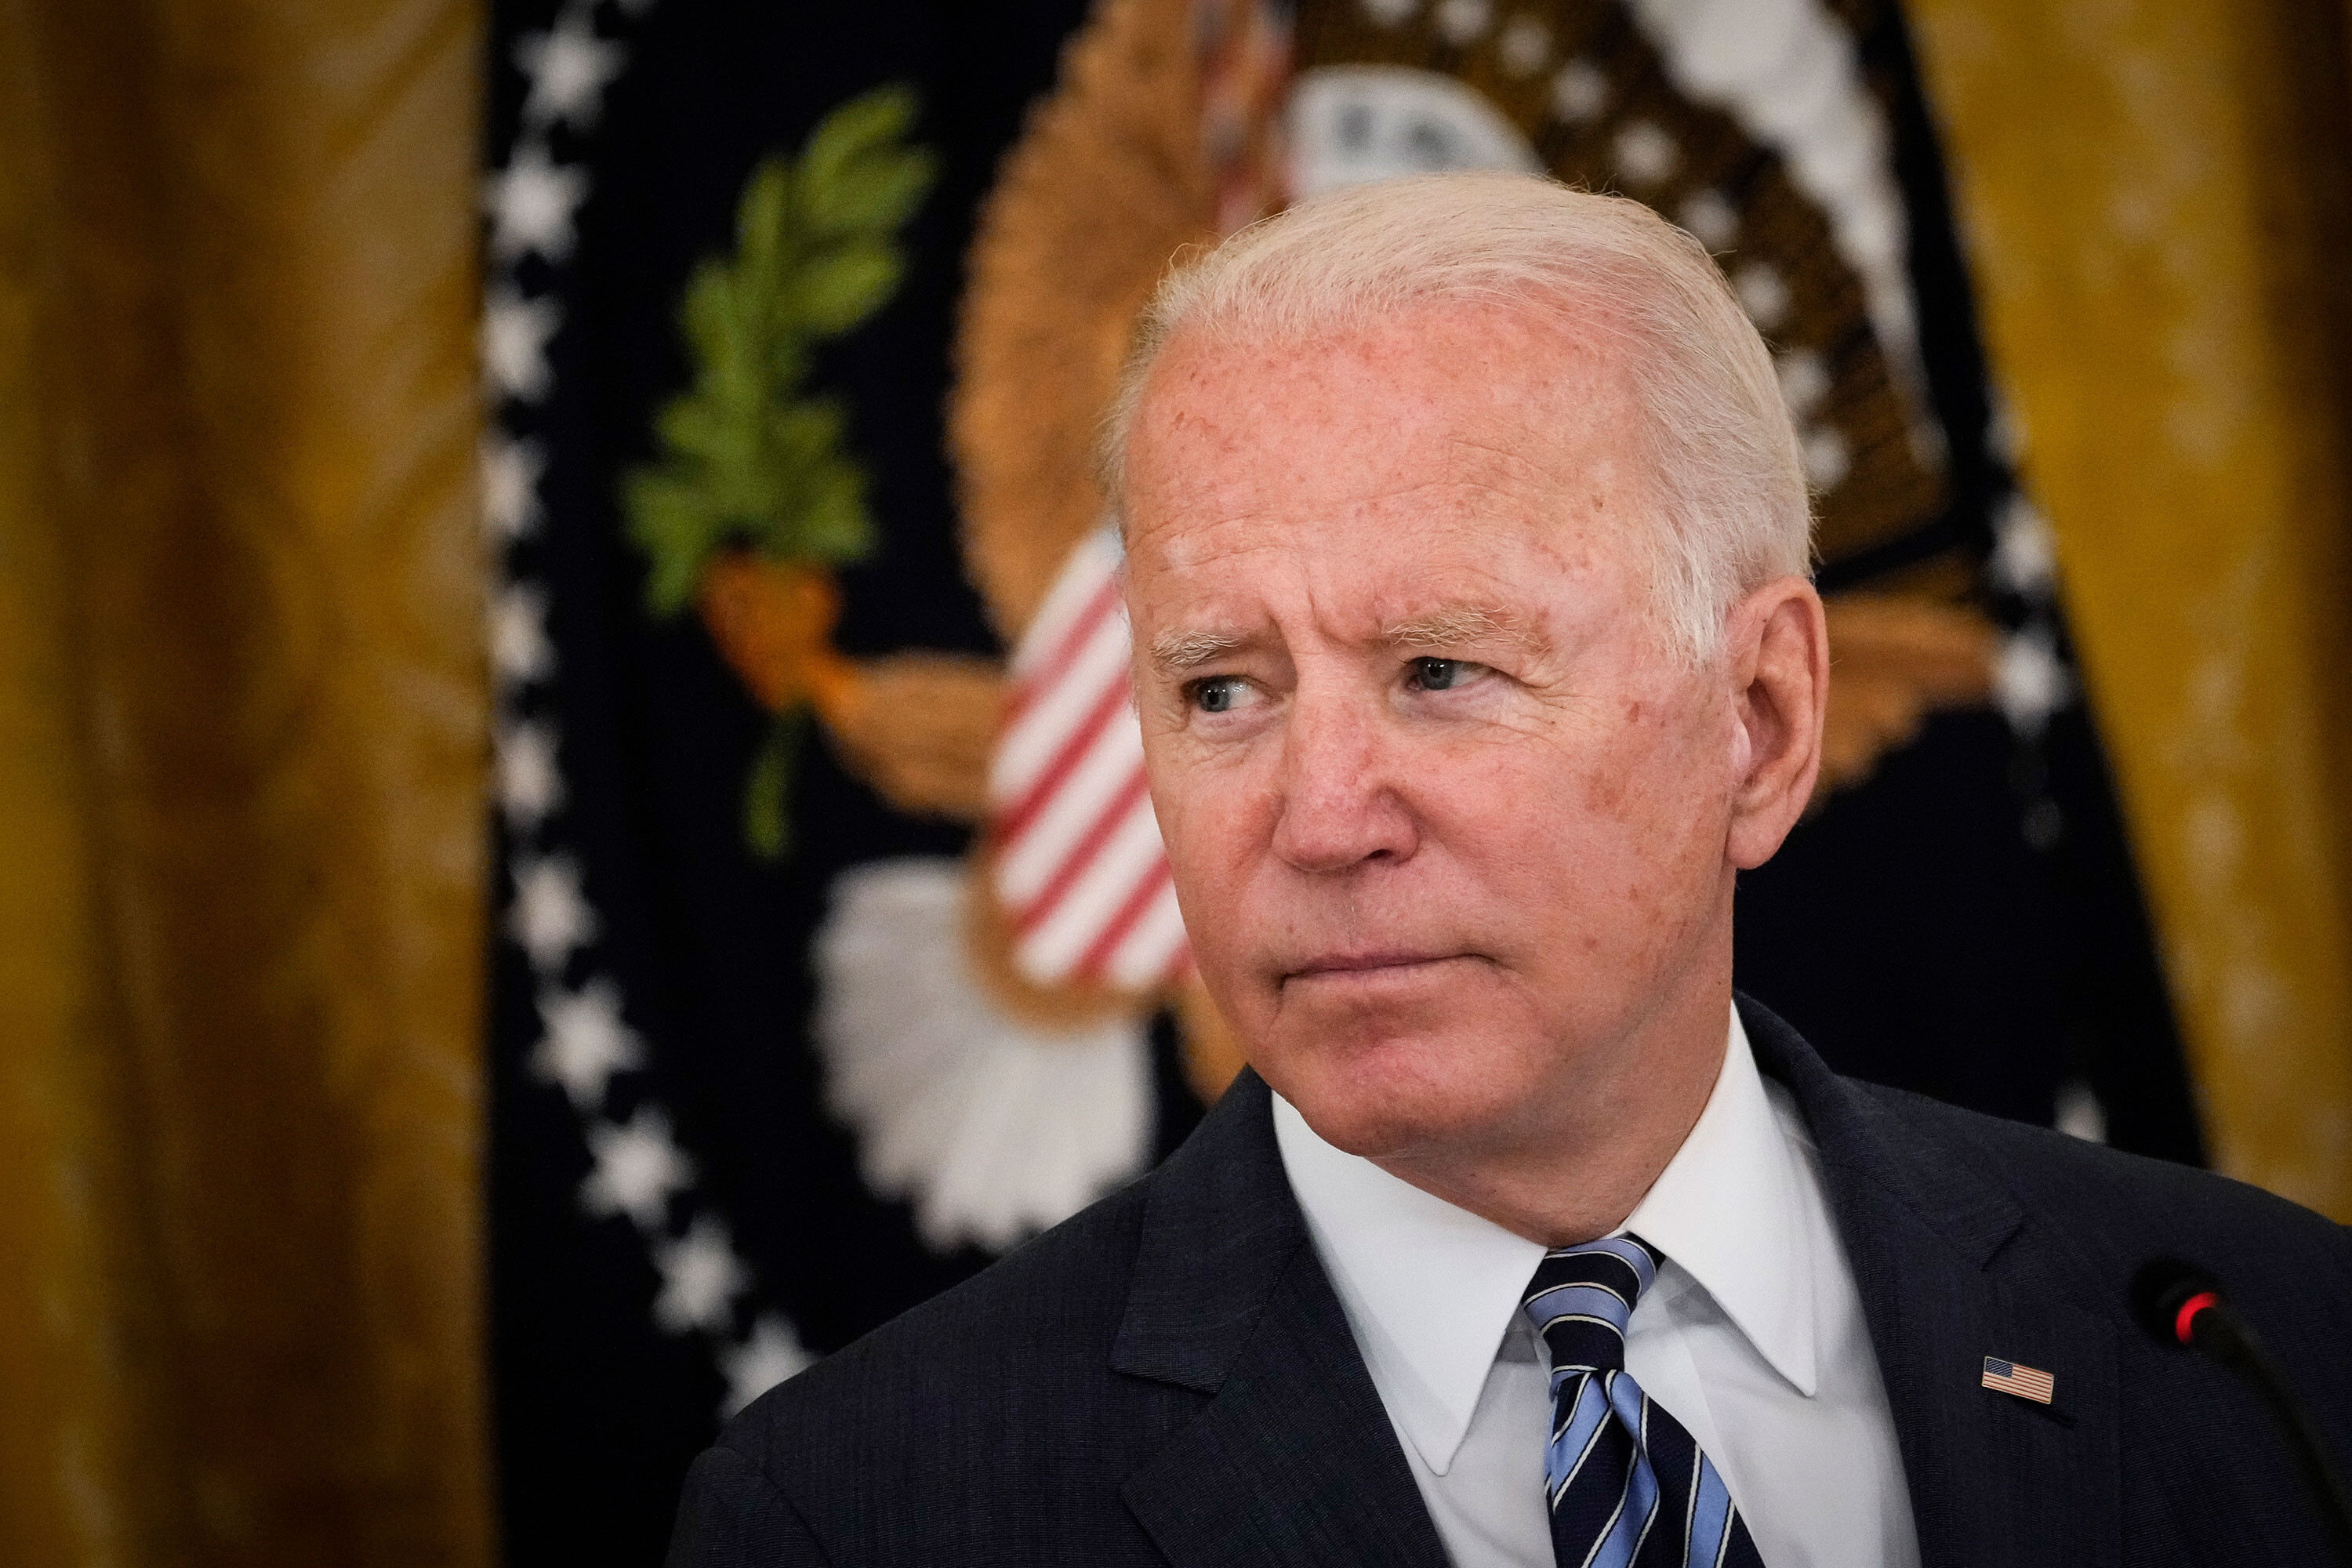 Biden to spend this week working behind the scenes to press Democrats on his sweeping domestic agenda